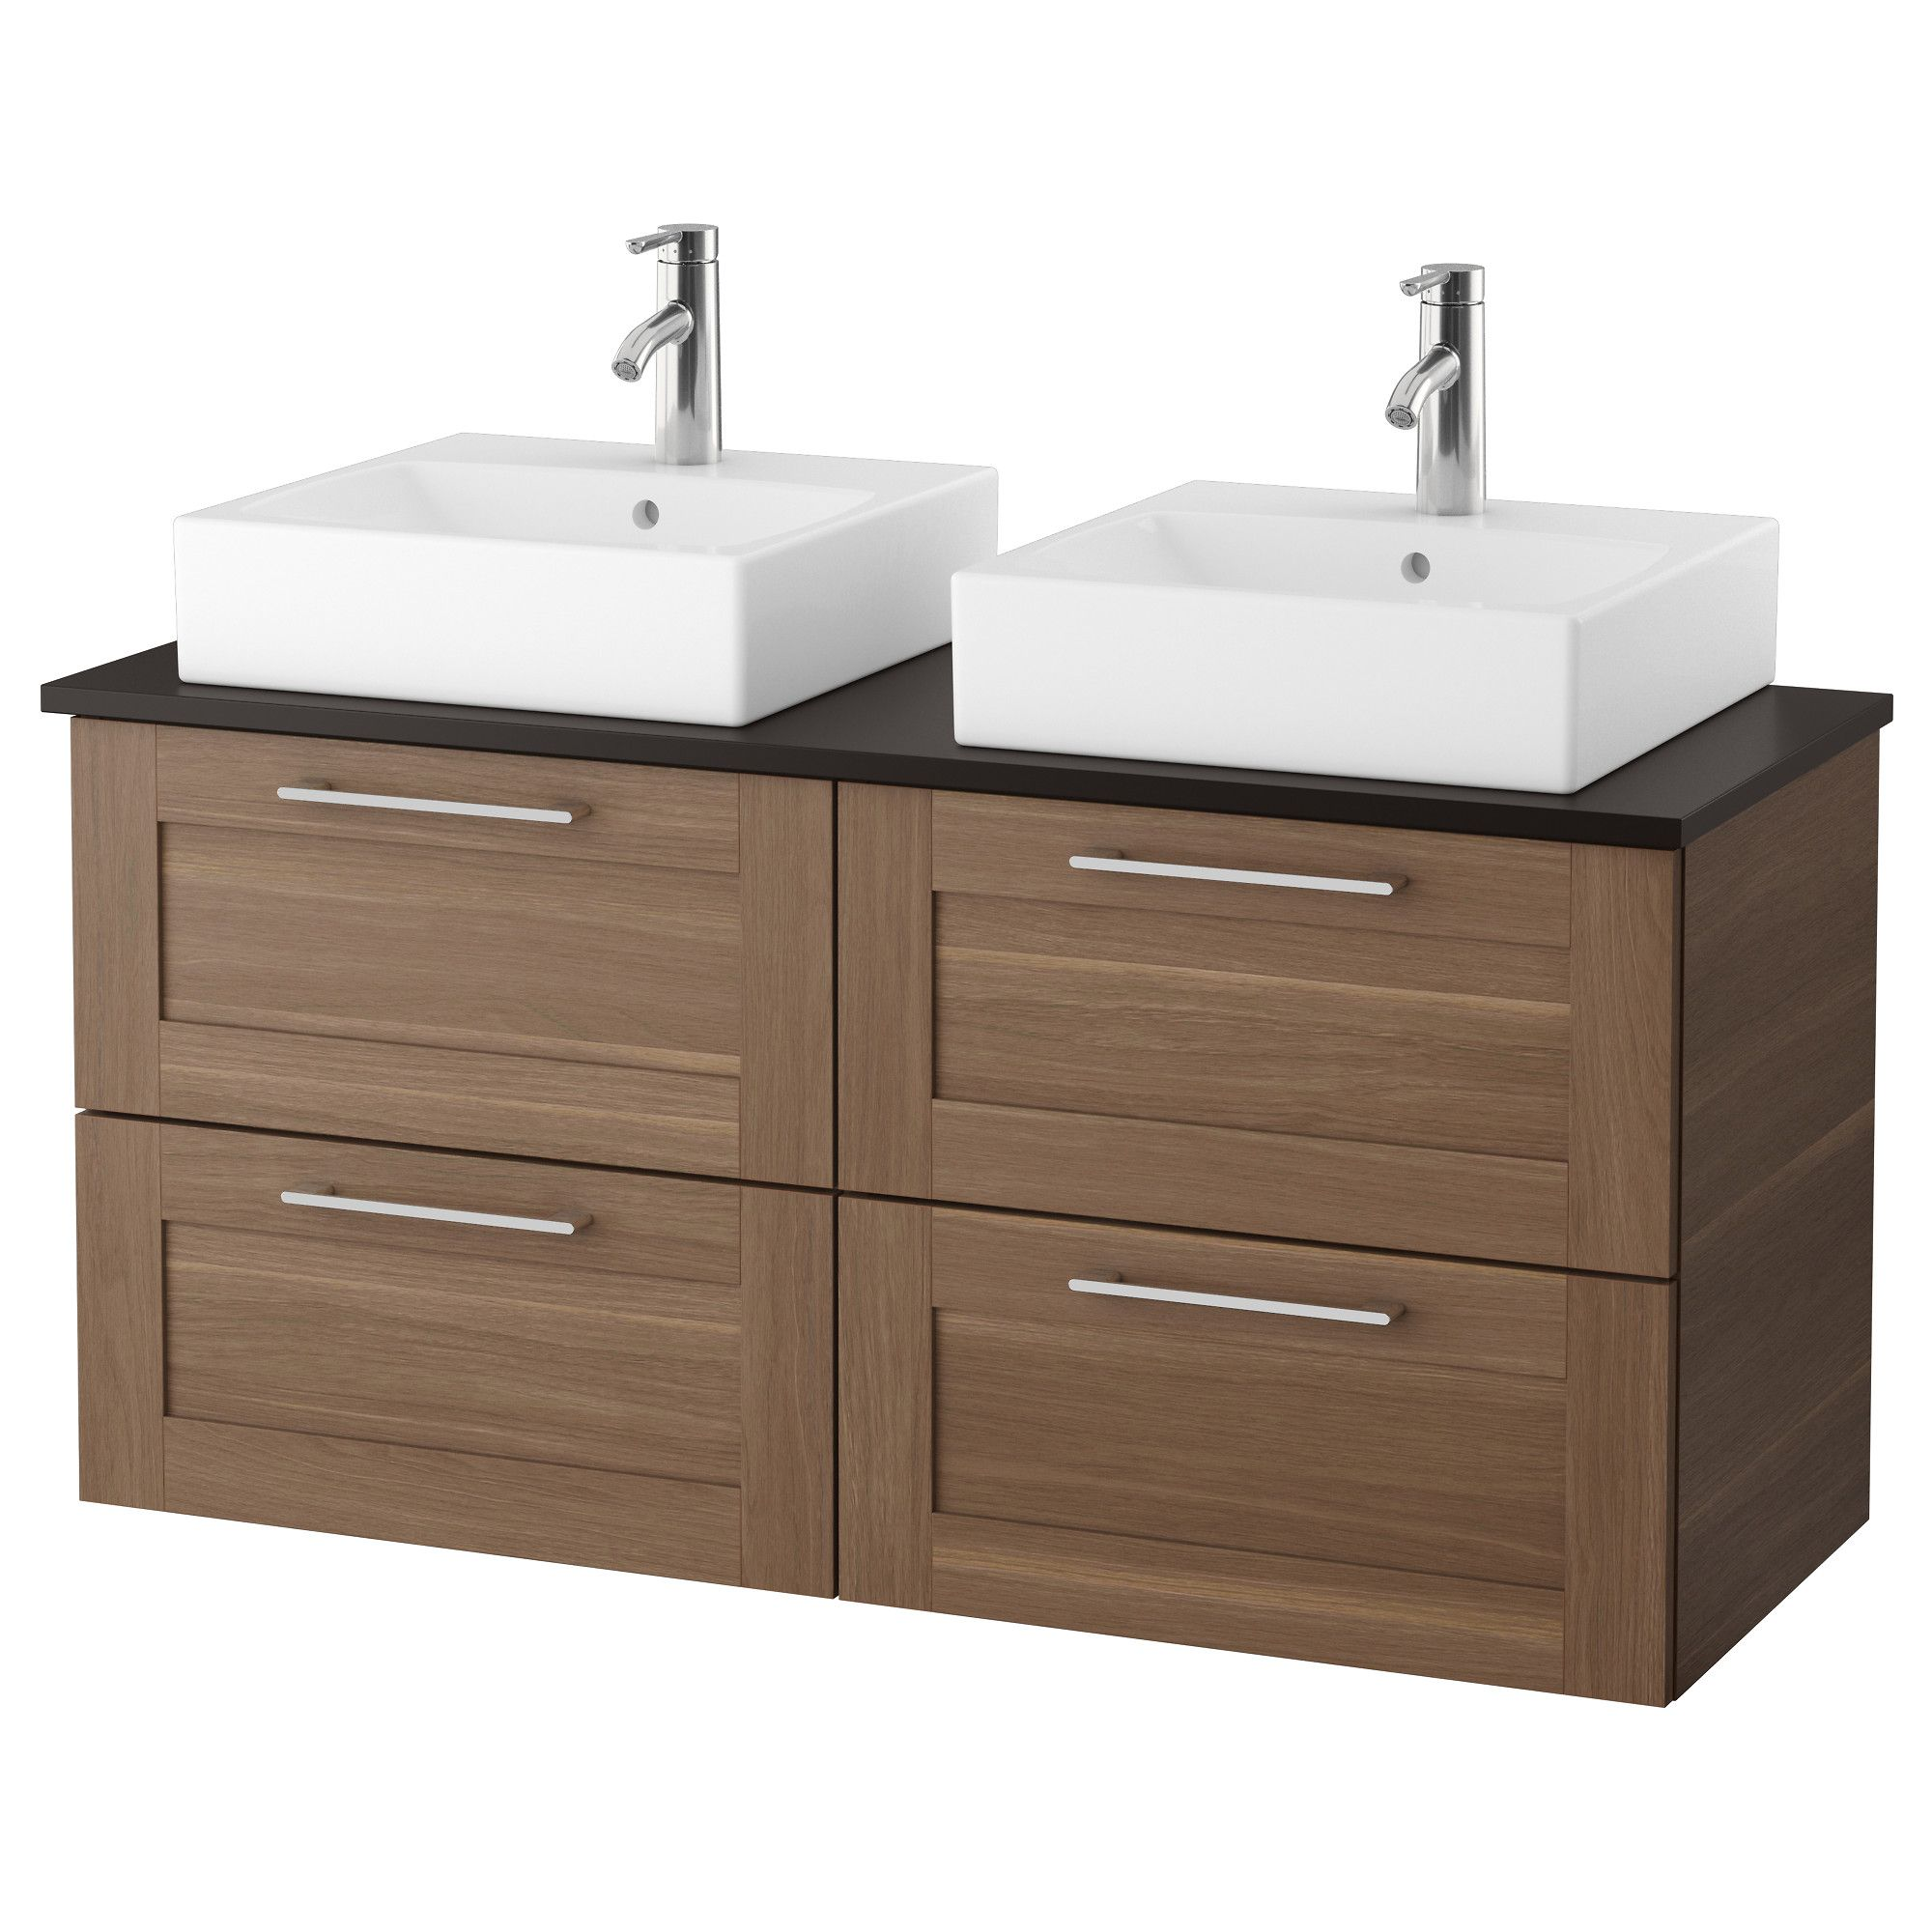 Godmorgon Tolken Tornviken Vanity Countertop And 17 3 4 Sink